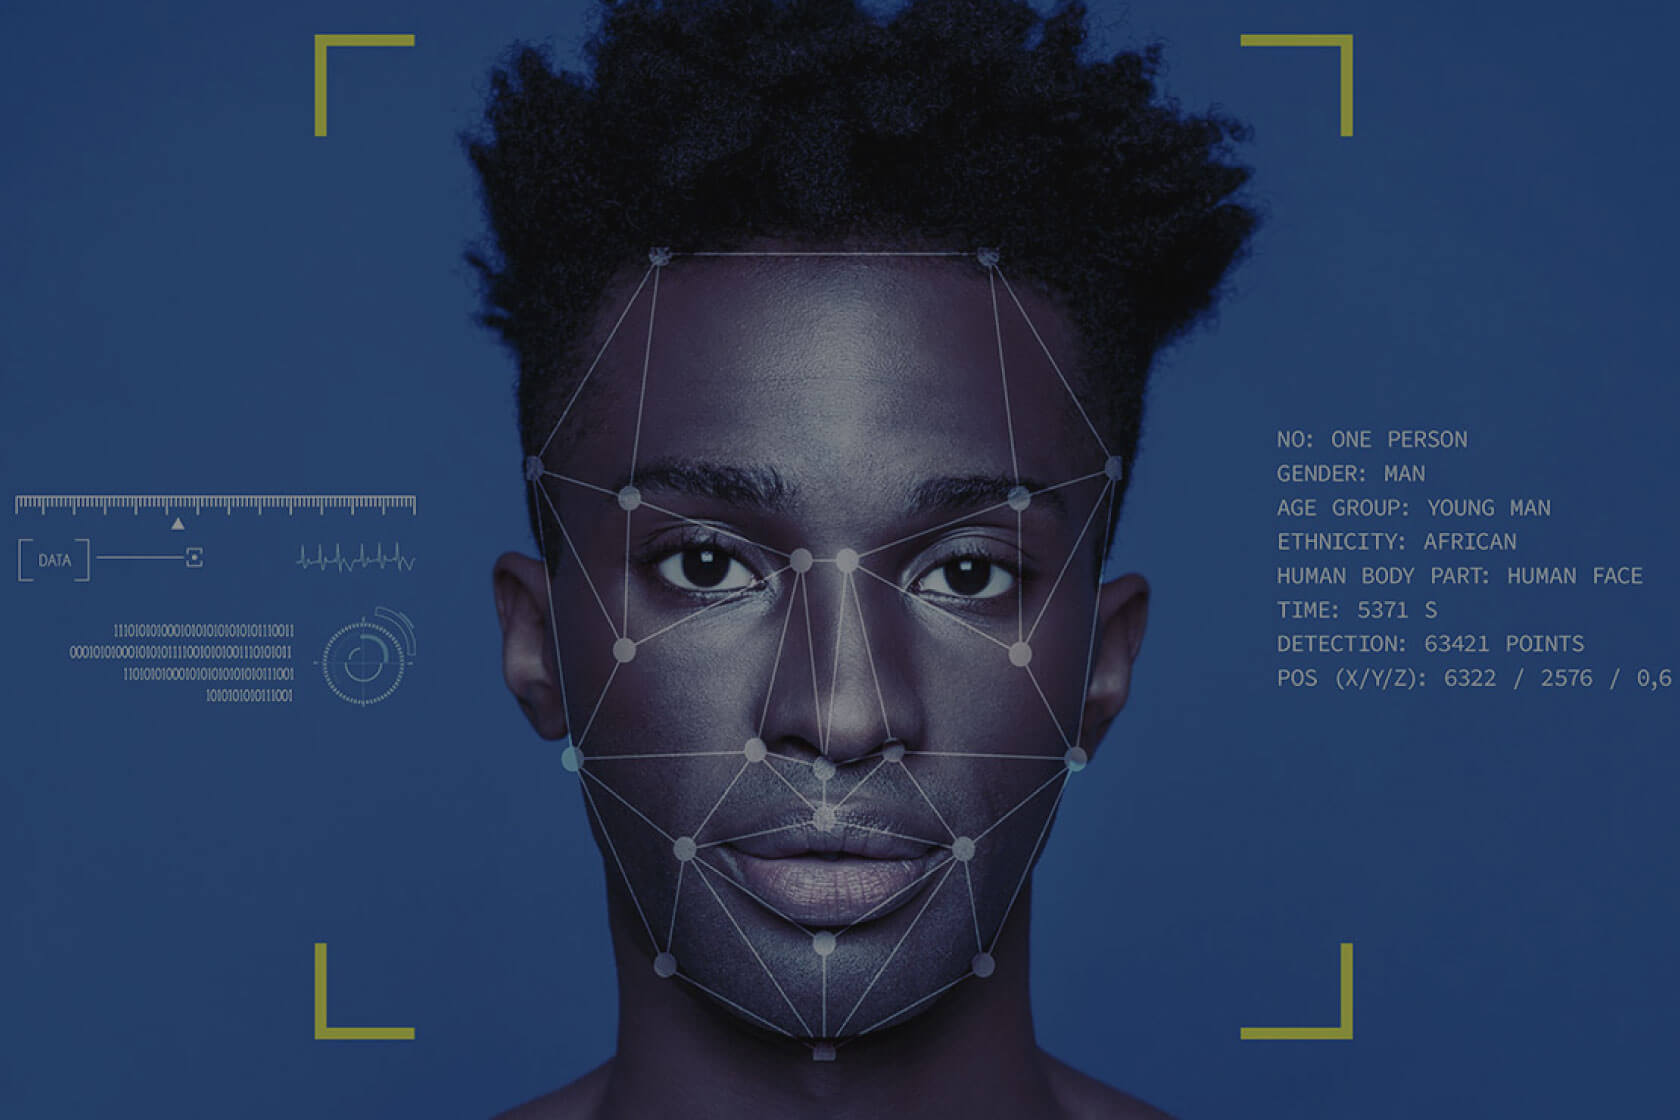 Facial Recognition Technology: A Look at the Evolution, Applications and Leading Api's